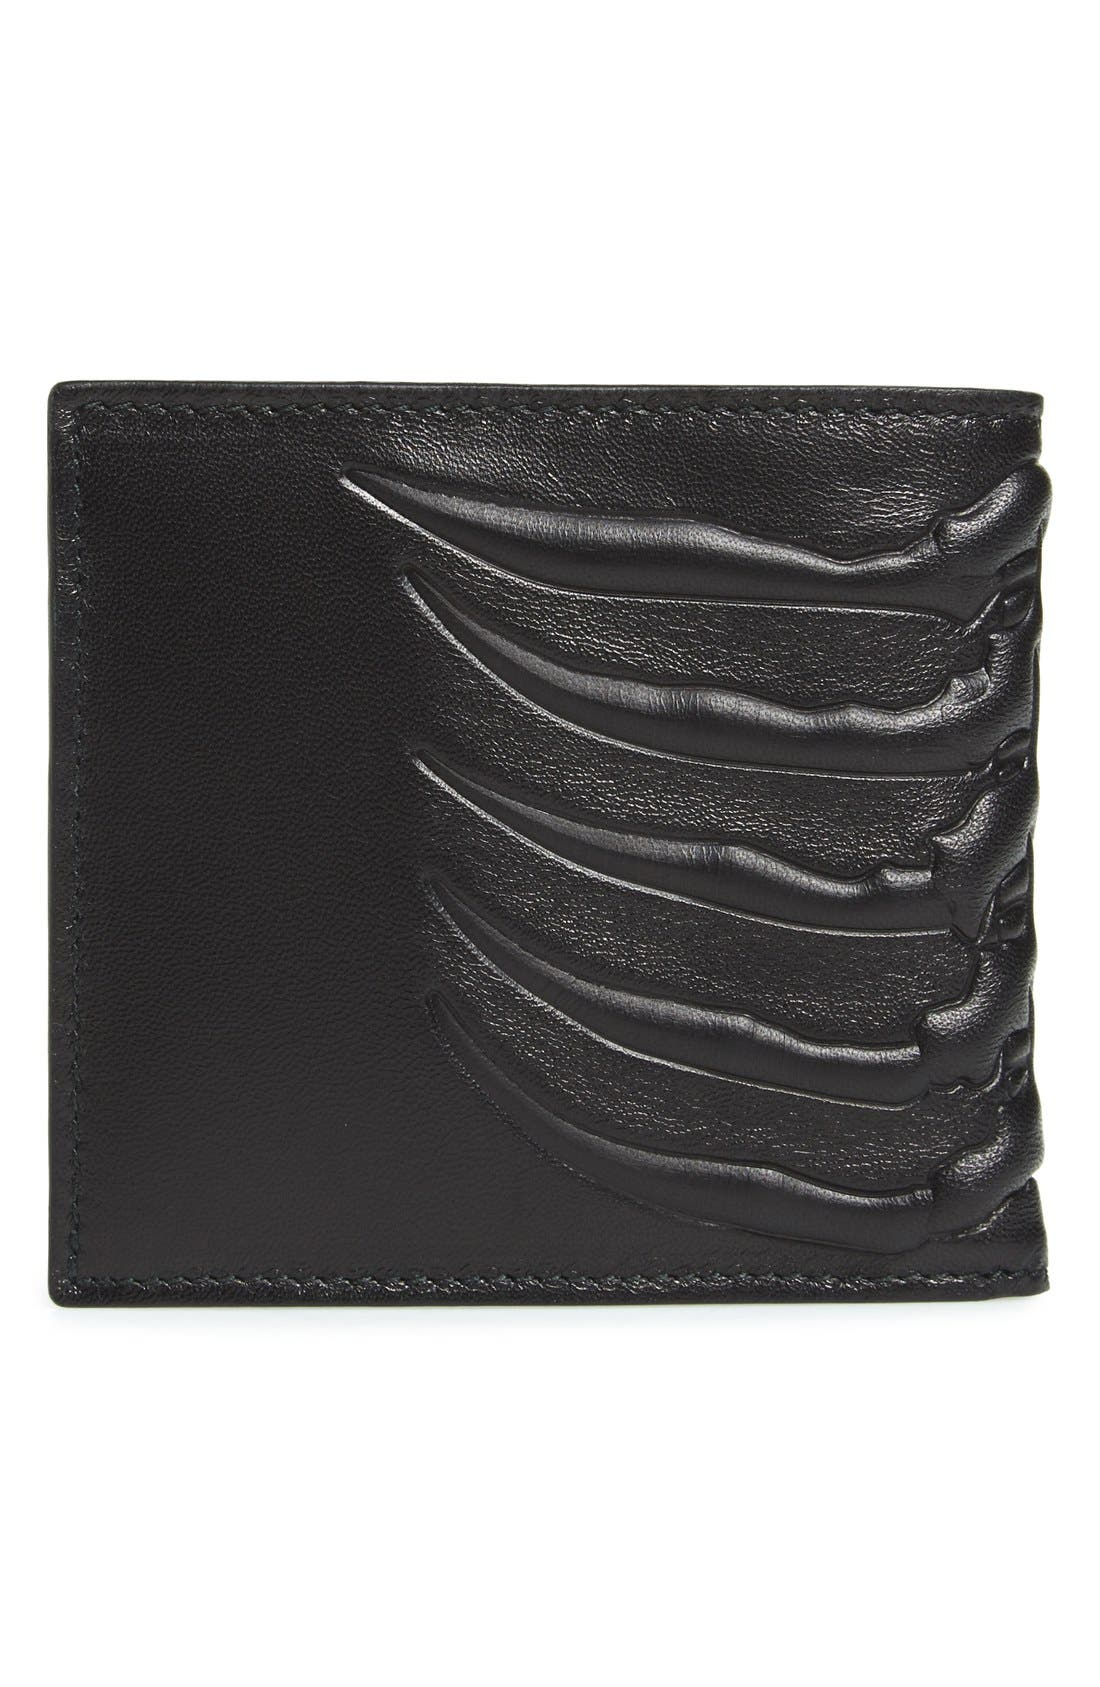 Alternate Image 3  - Alexander McQueen Rib Cage Leather Wallet